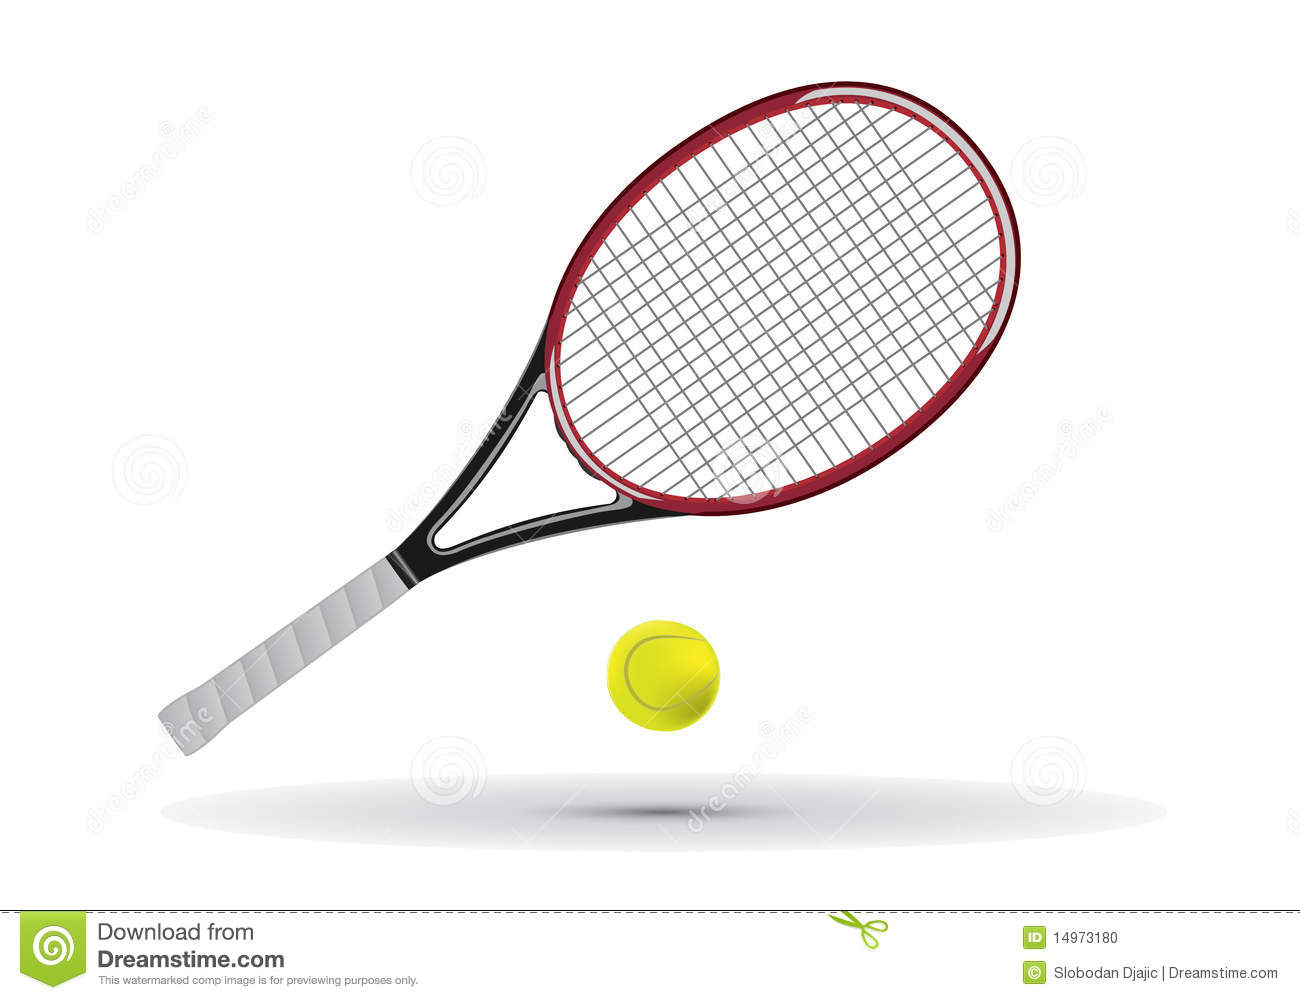 Tennis Racket And Ball Illustration Stock Photo - Image: 14973180